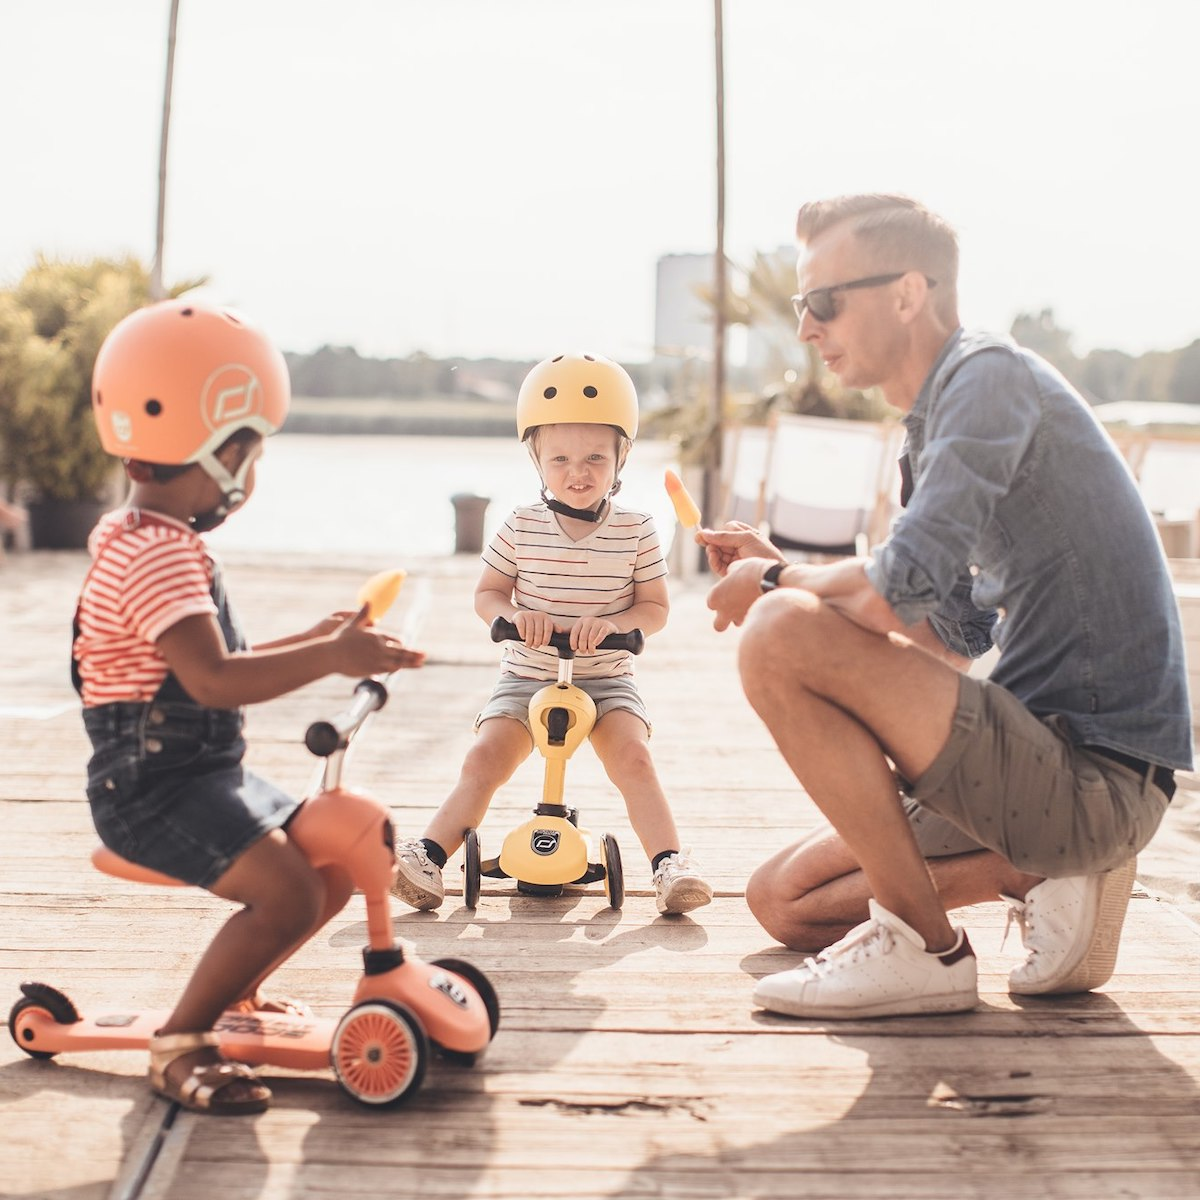 Father and his two children riding scoot & ride scooters on a boardwalk